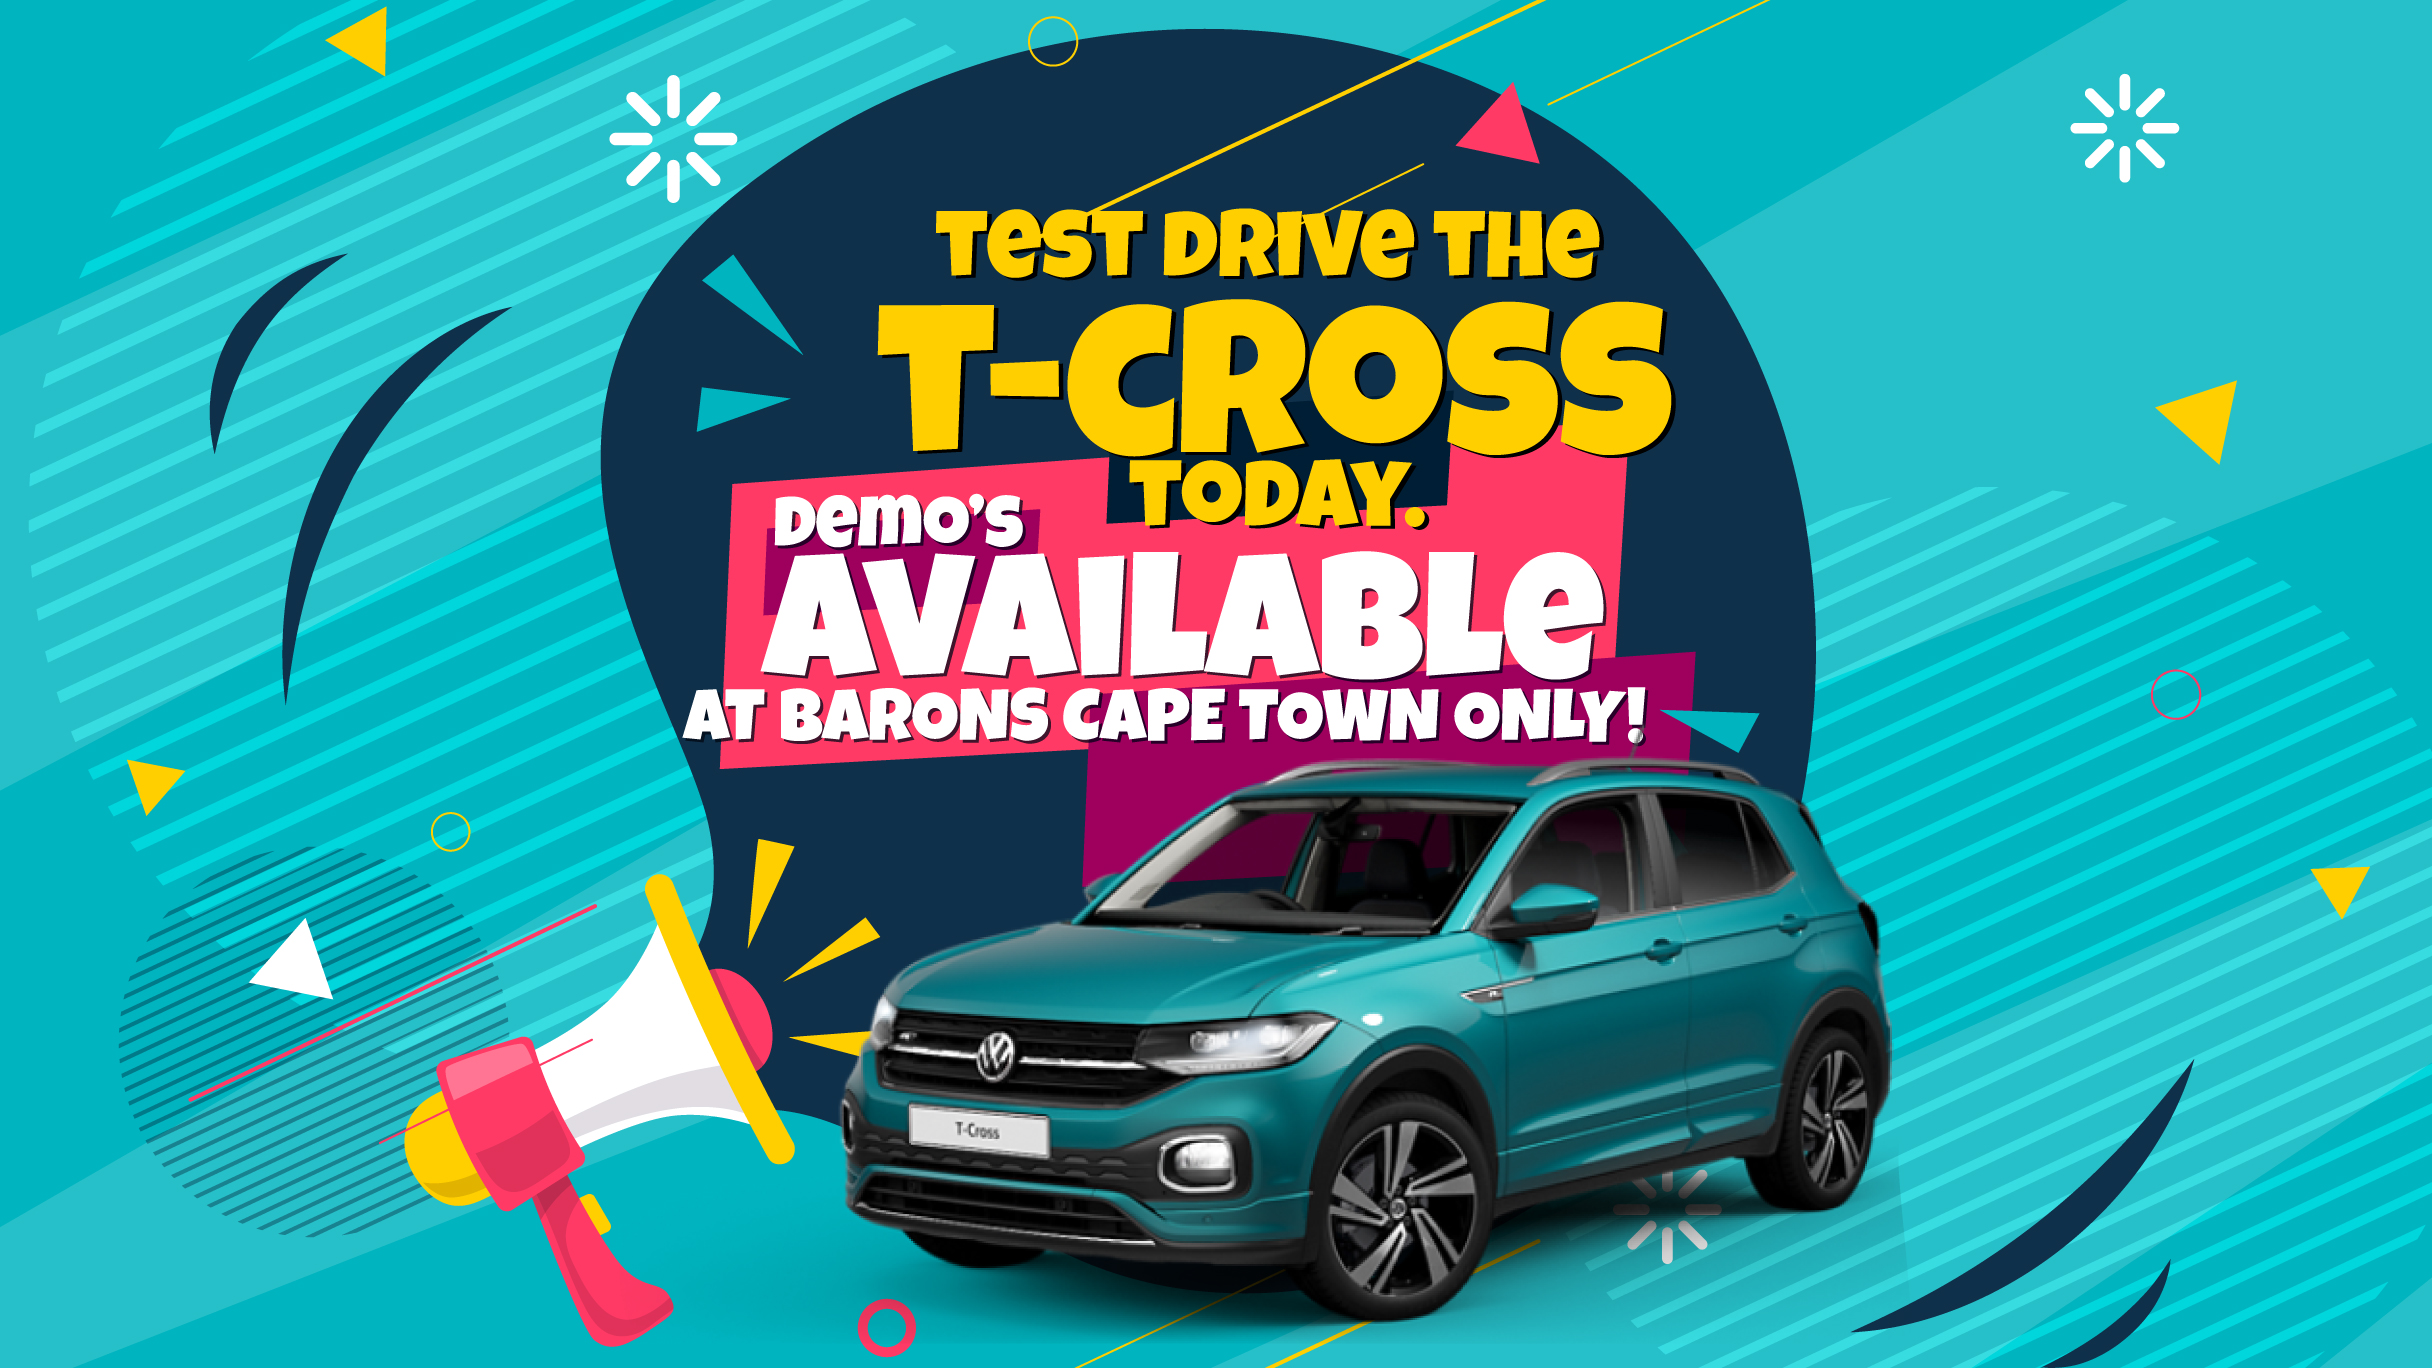 Drive the T-Cross from Barons Cape Town